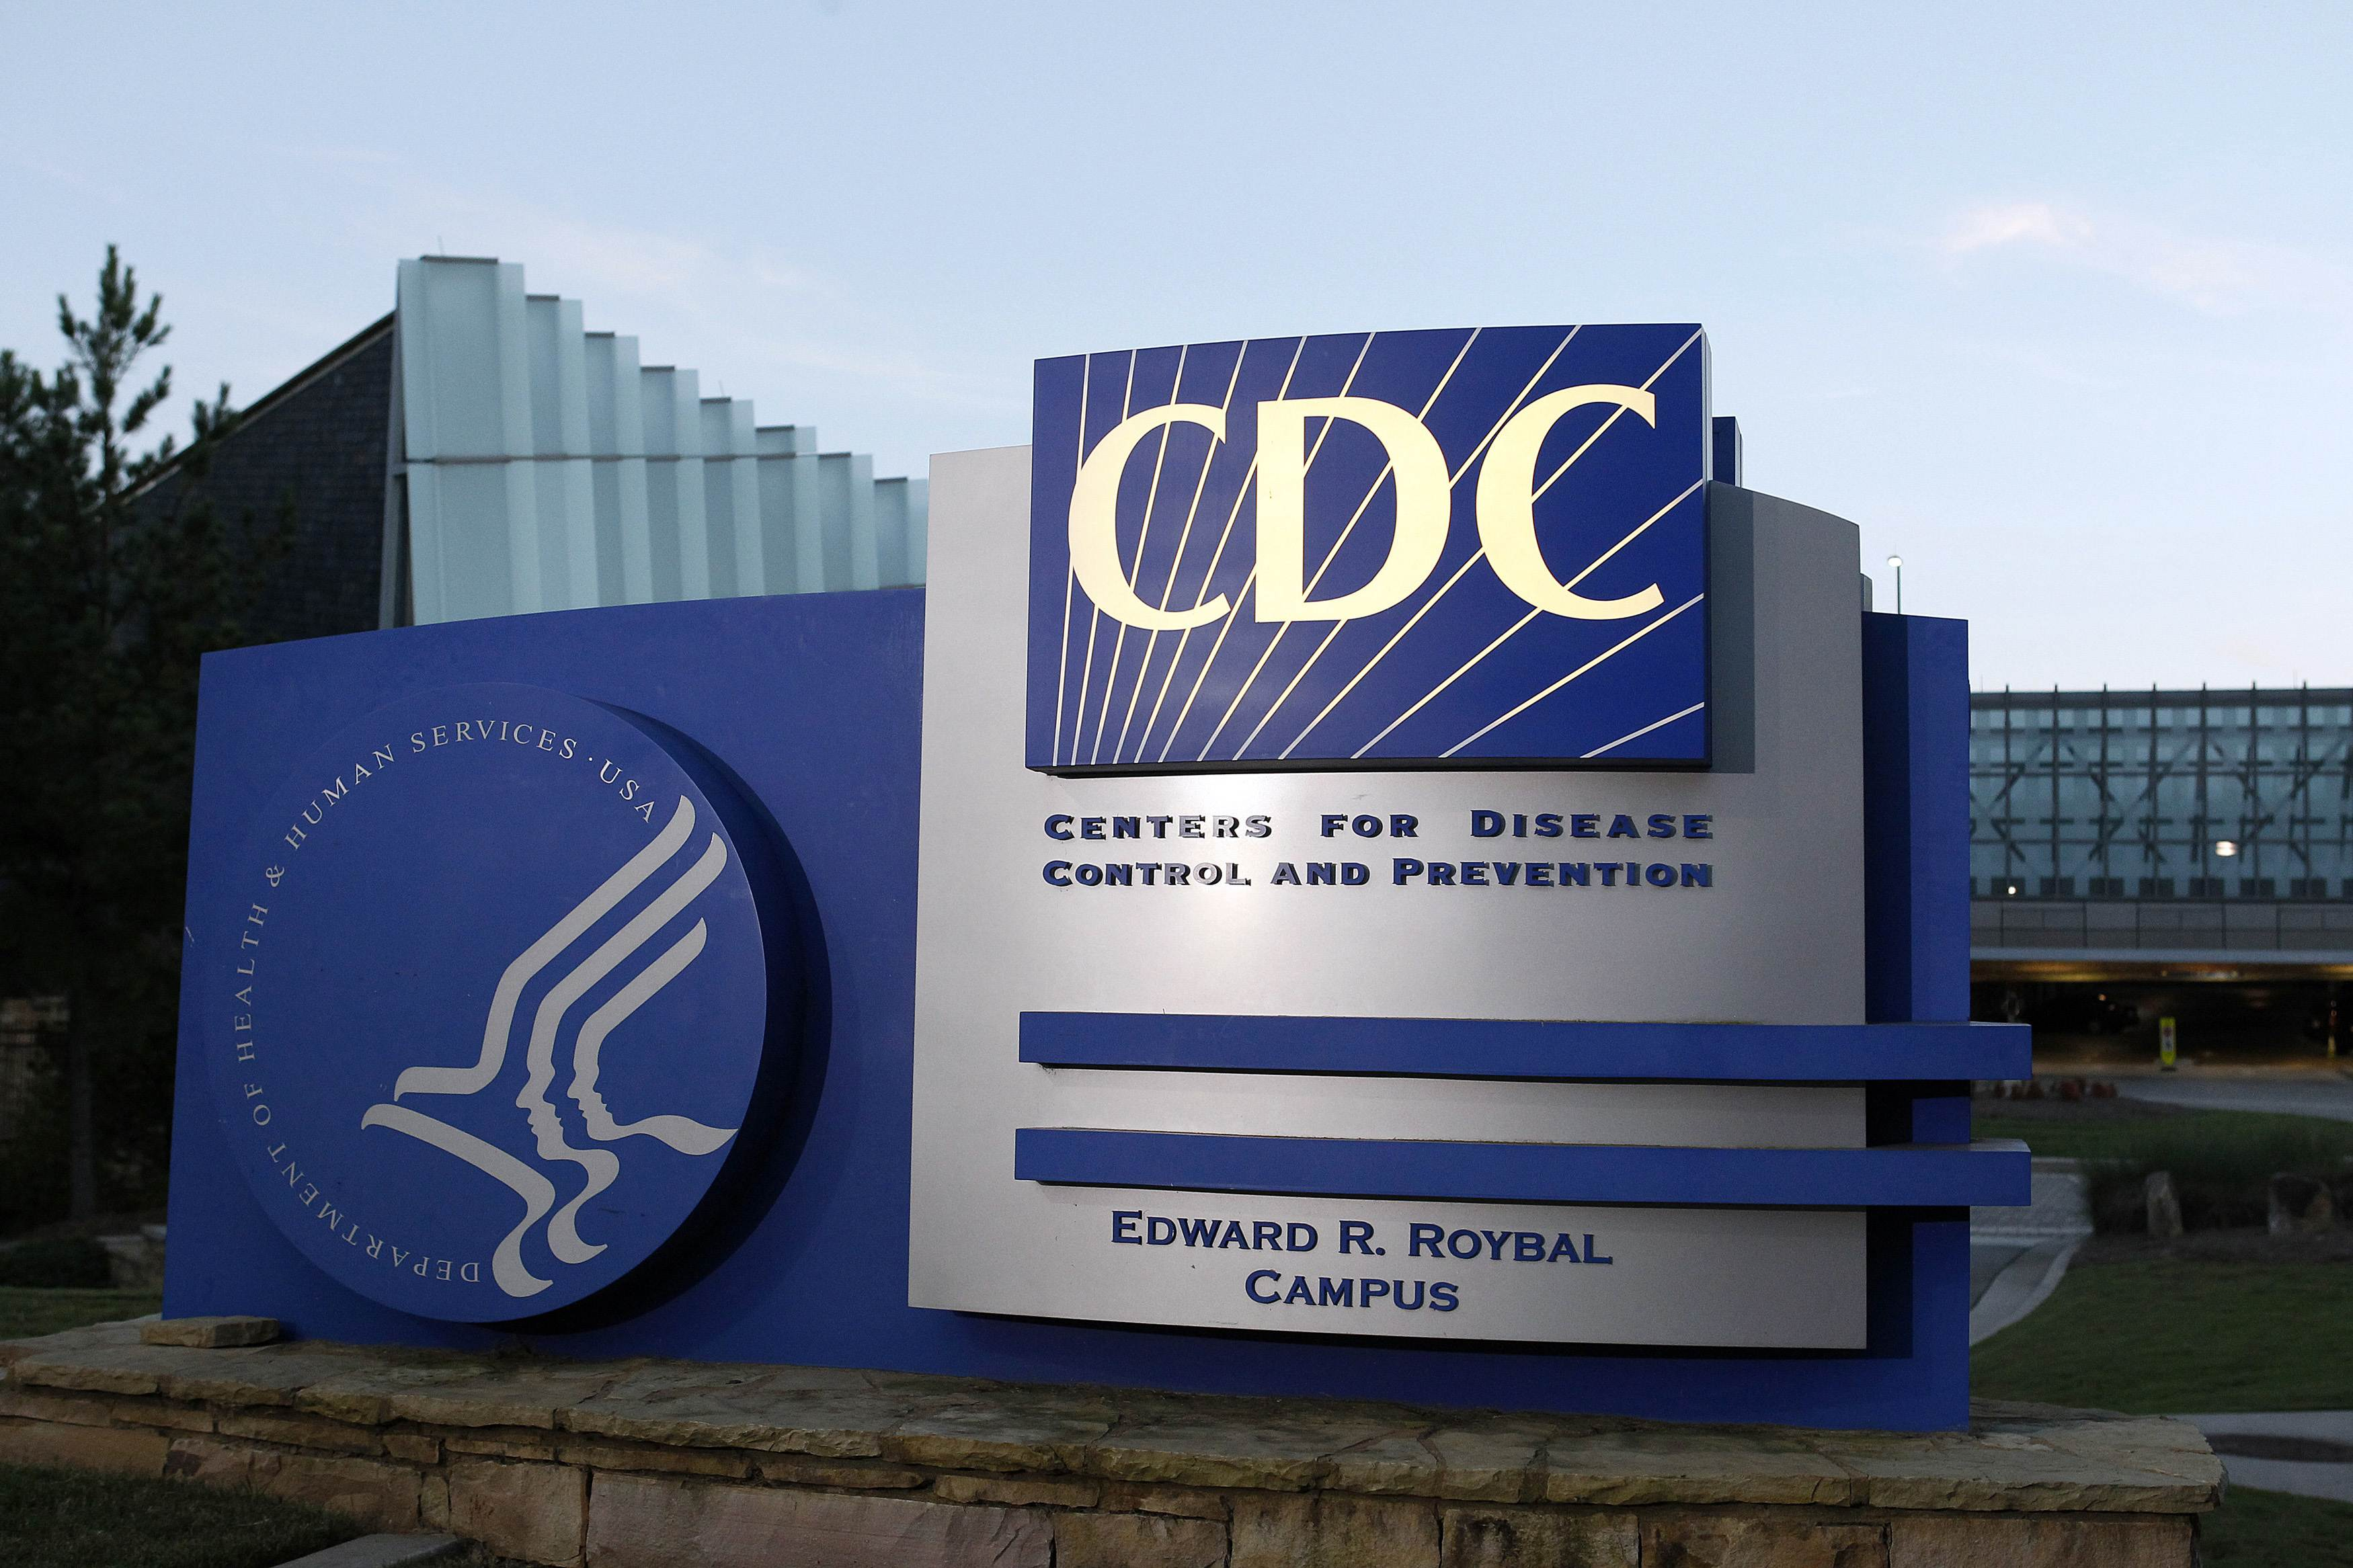 CDC scientists complain of corporate influence